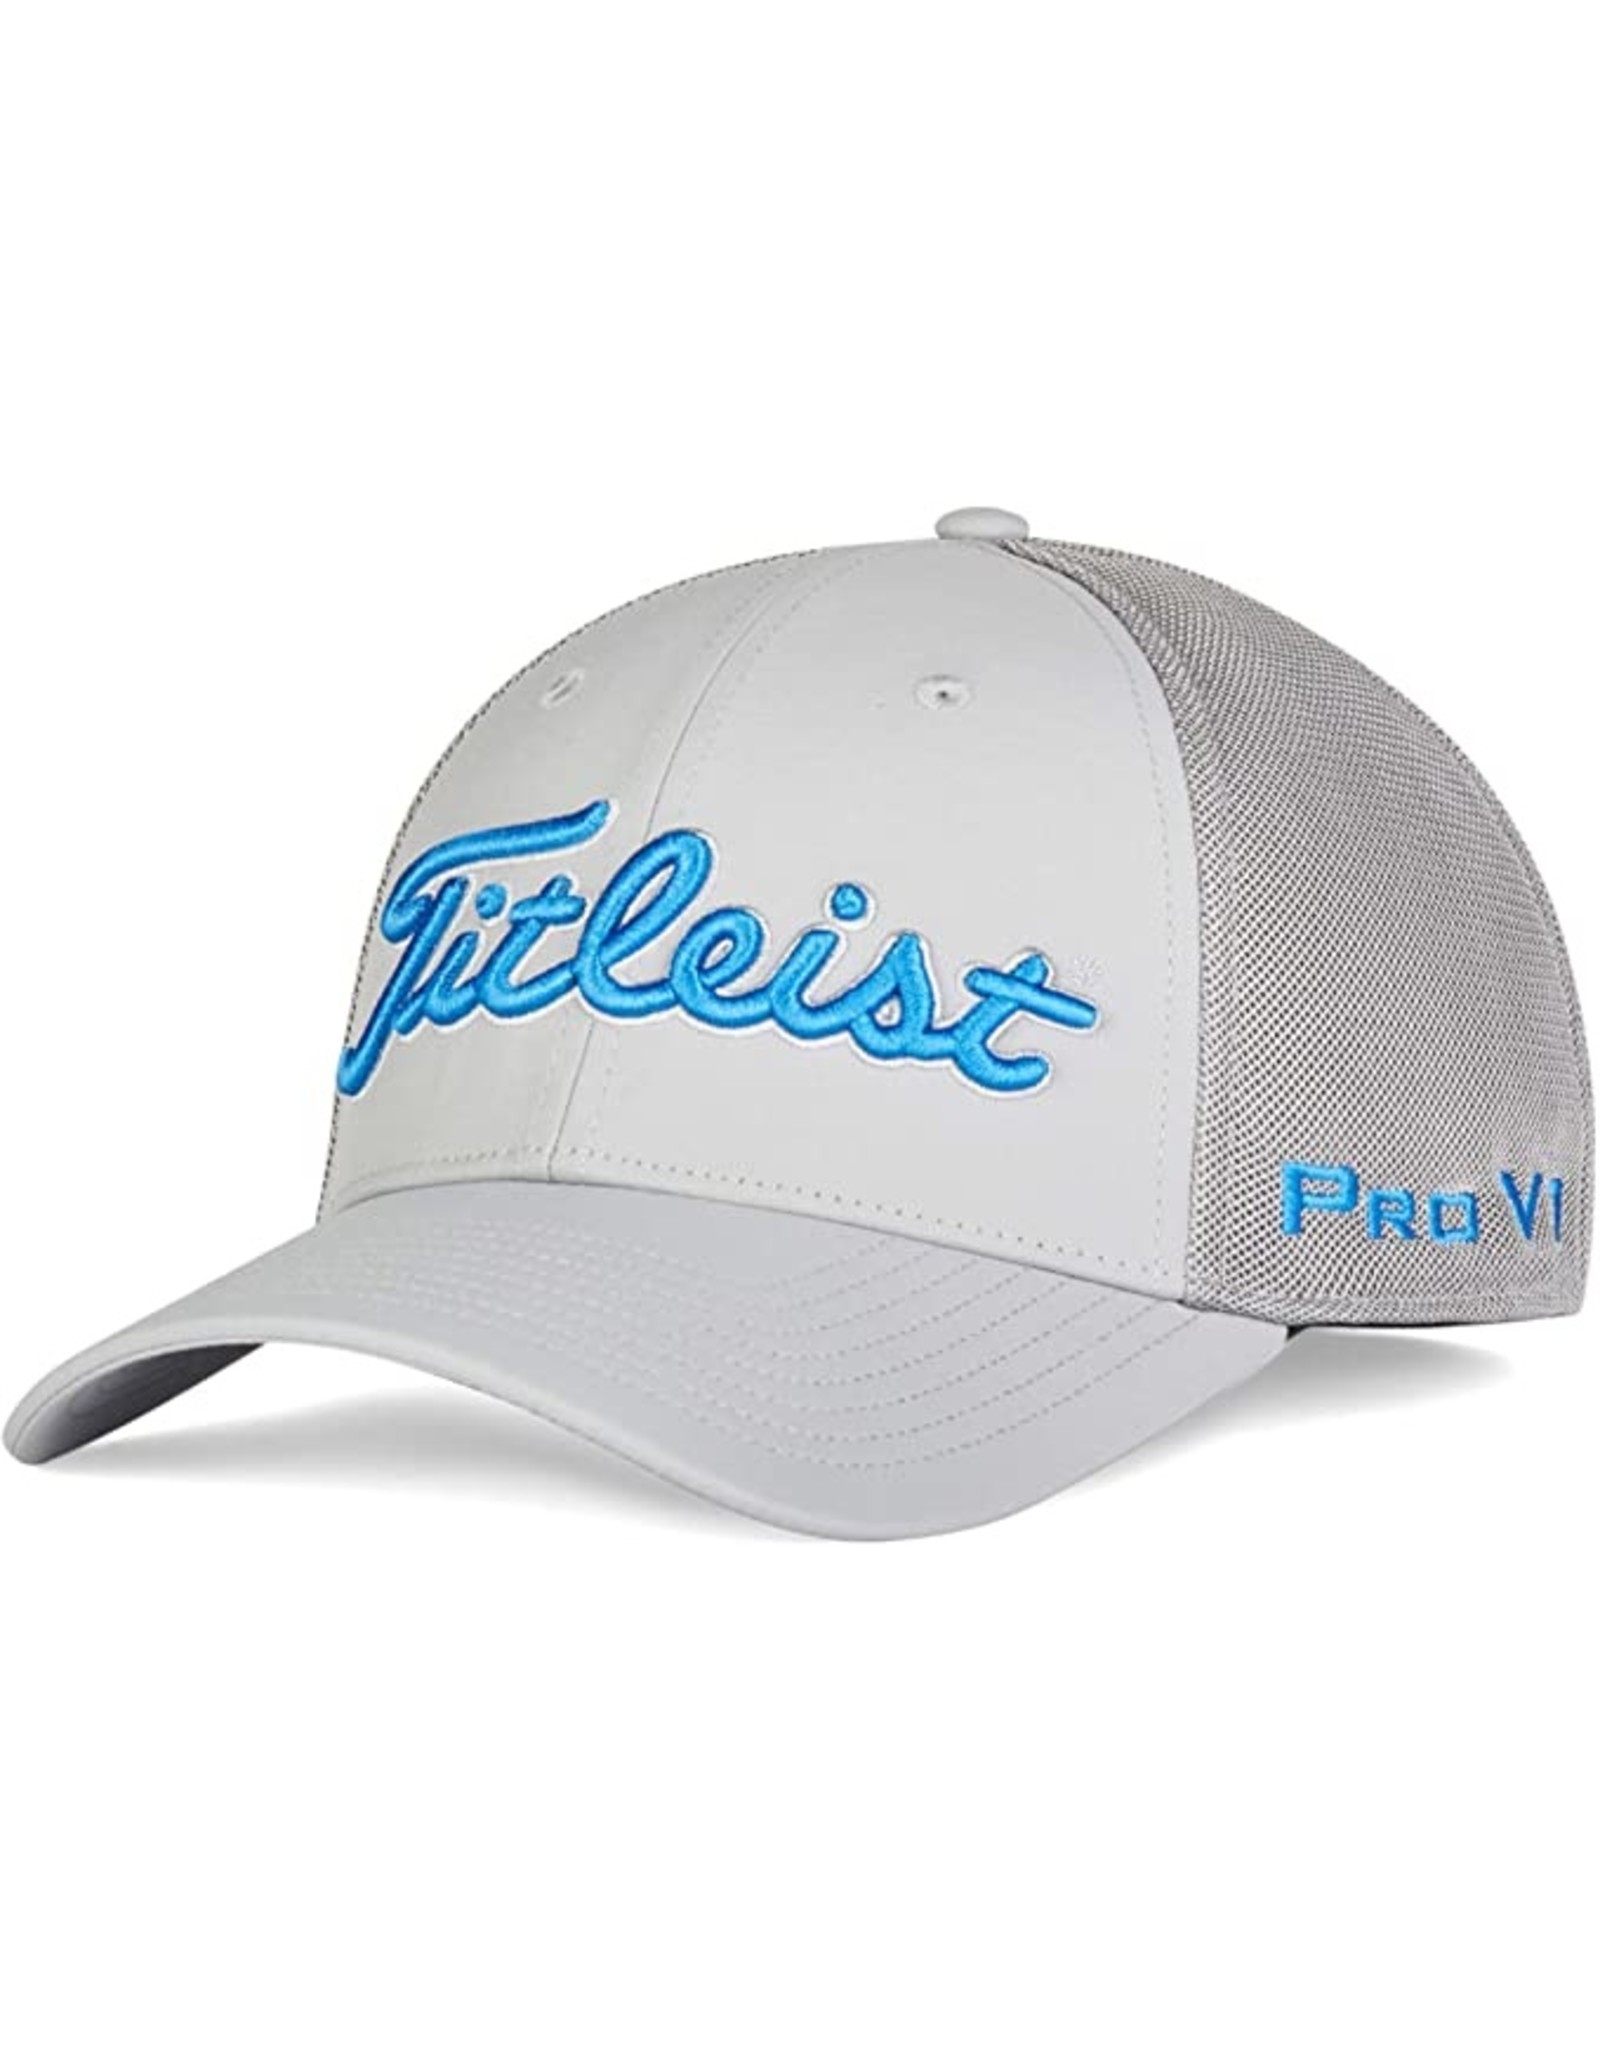 Titleist Titleist Tour Sports Mesh Hat